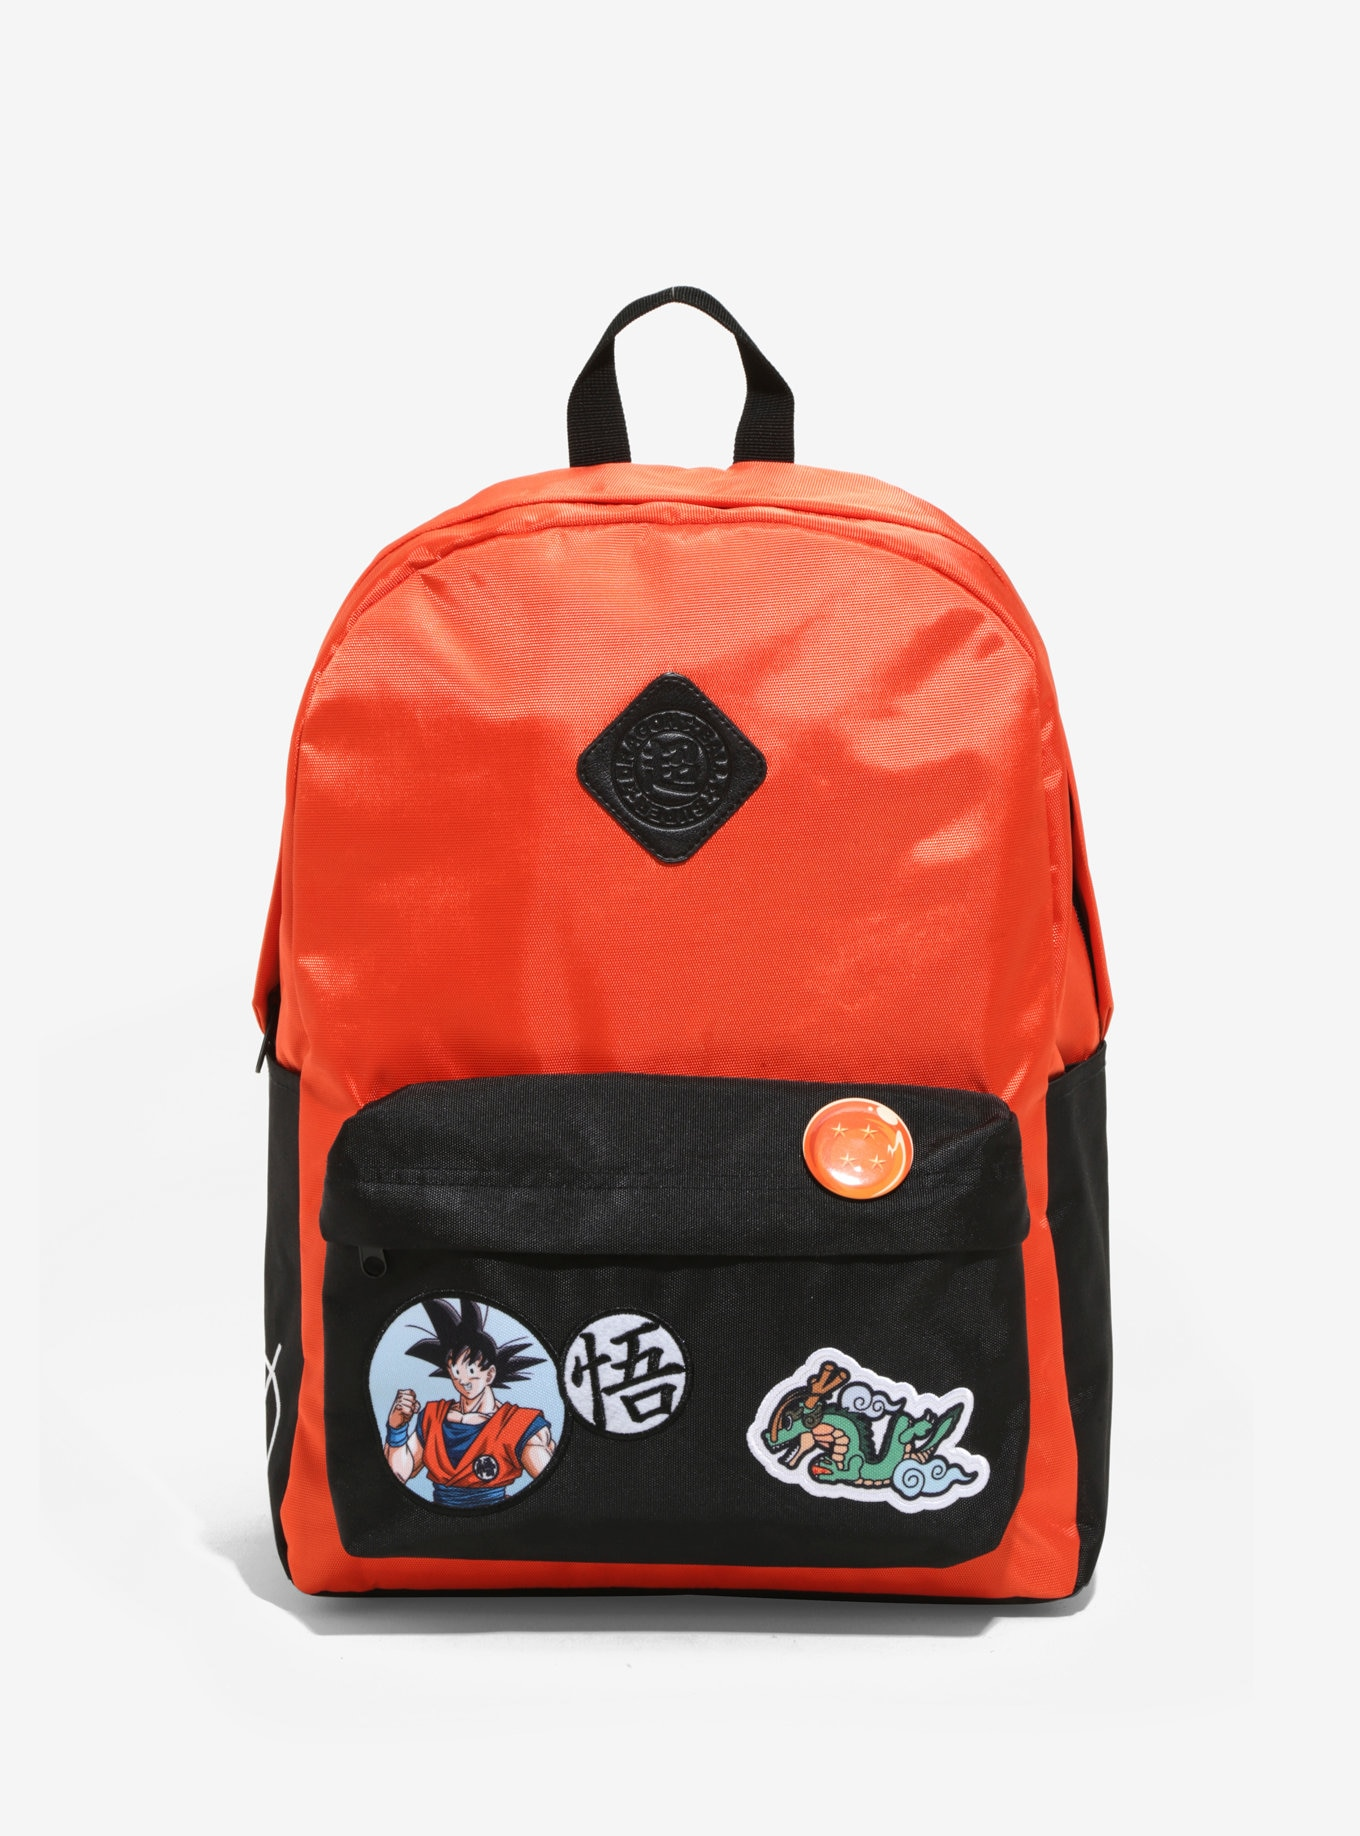 Bioworld Dragon Ball Super Patches Backpack Book Bag